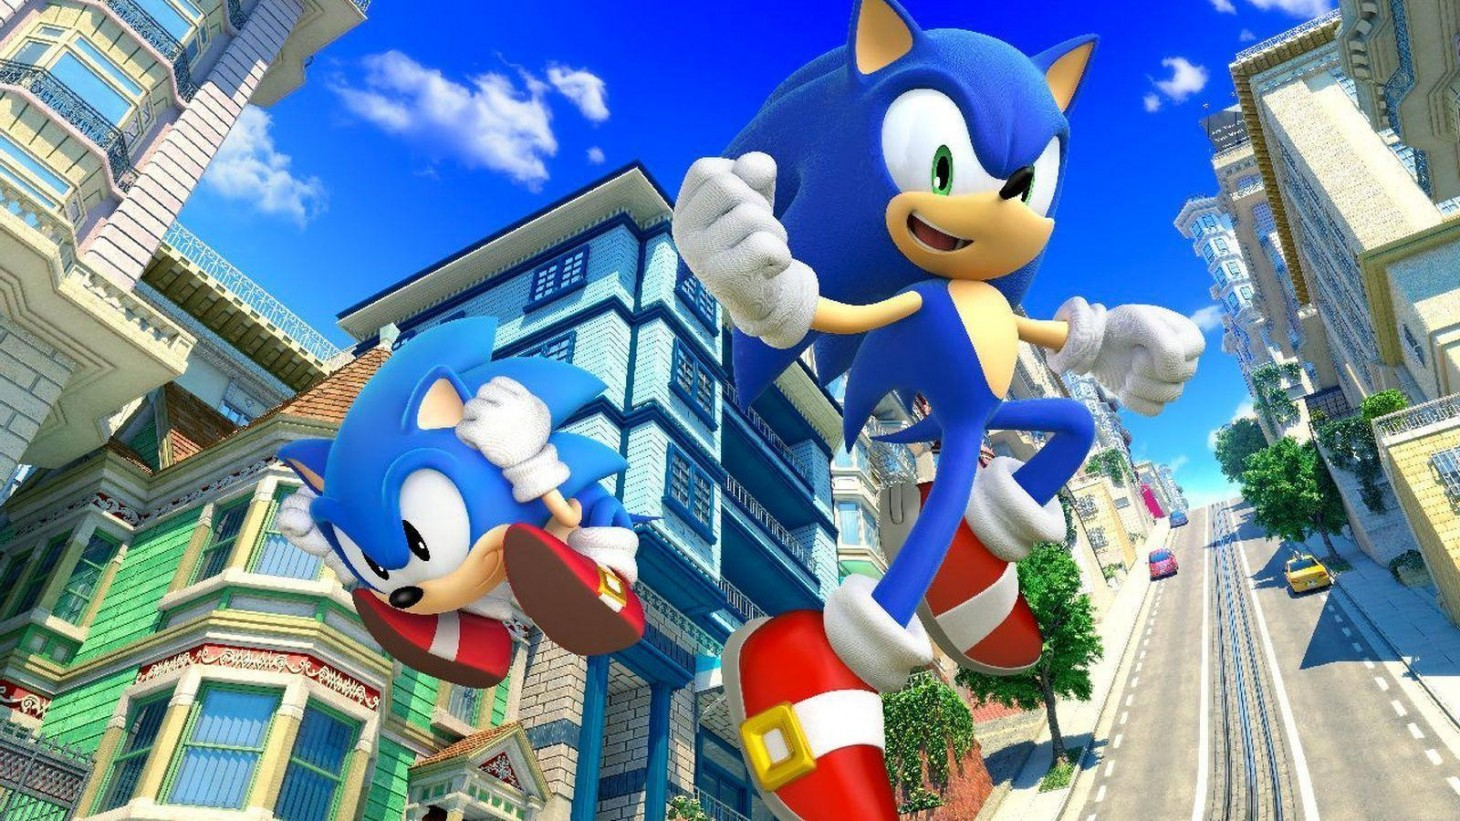 More Burning Questions About The Sonic The Hedgehog Franchise